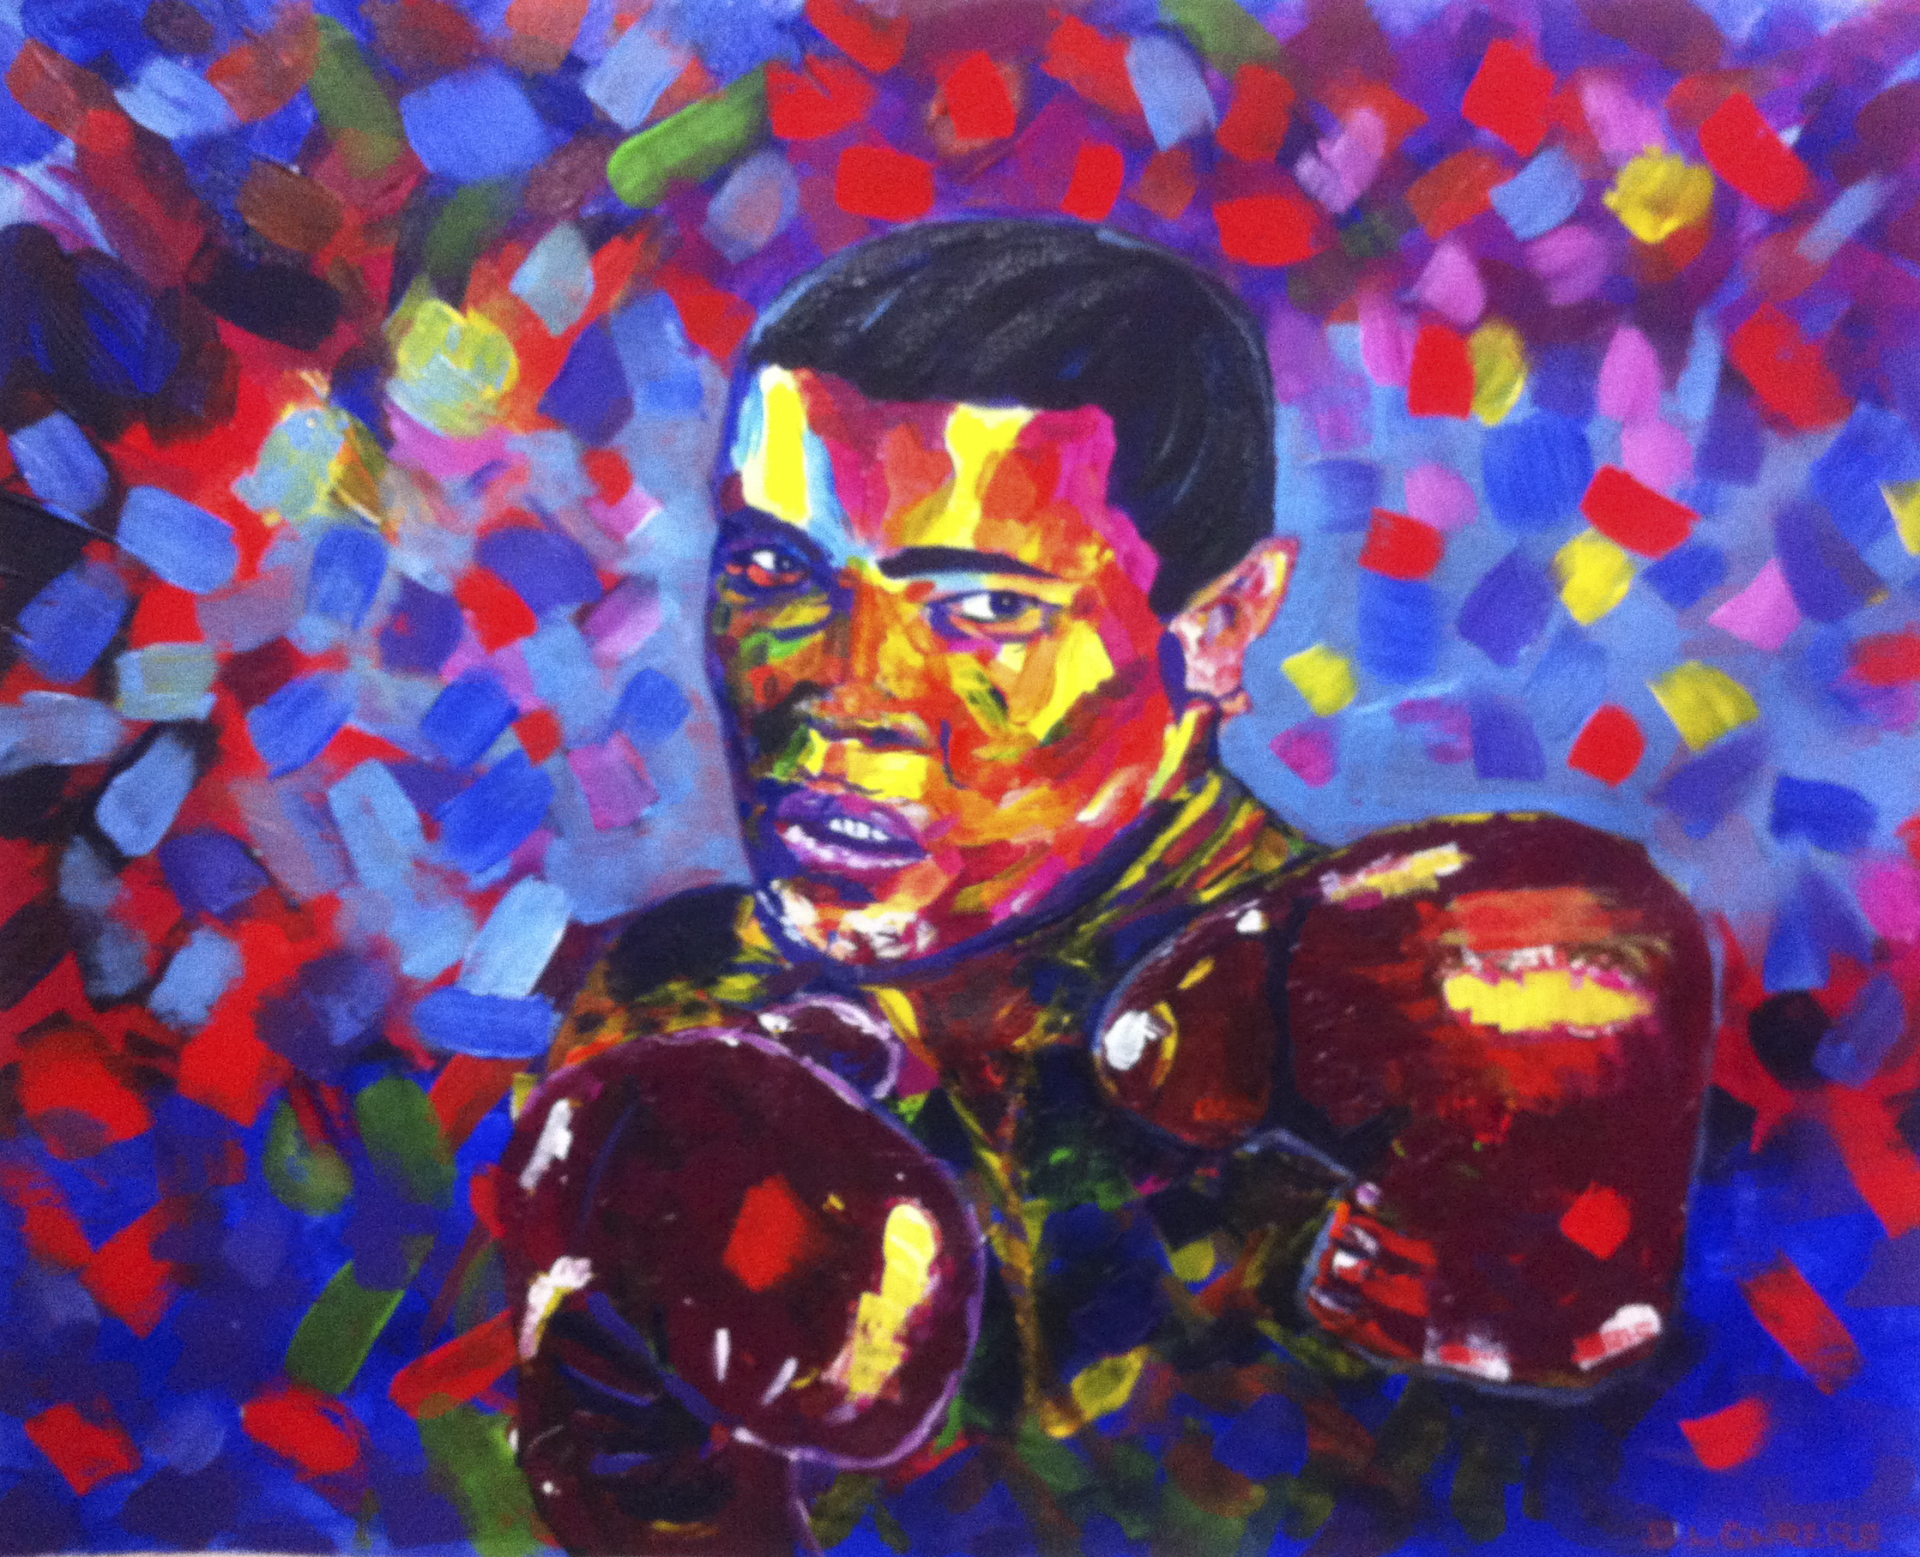 Mohammed Ali, colorful portrait, portrait painting, acrylic painting.